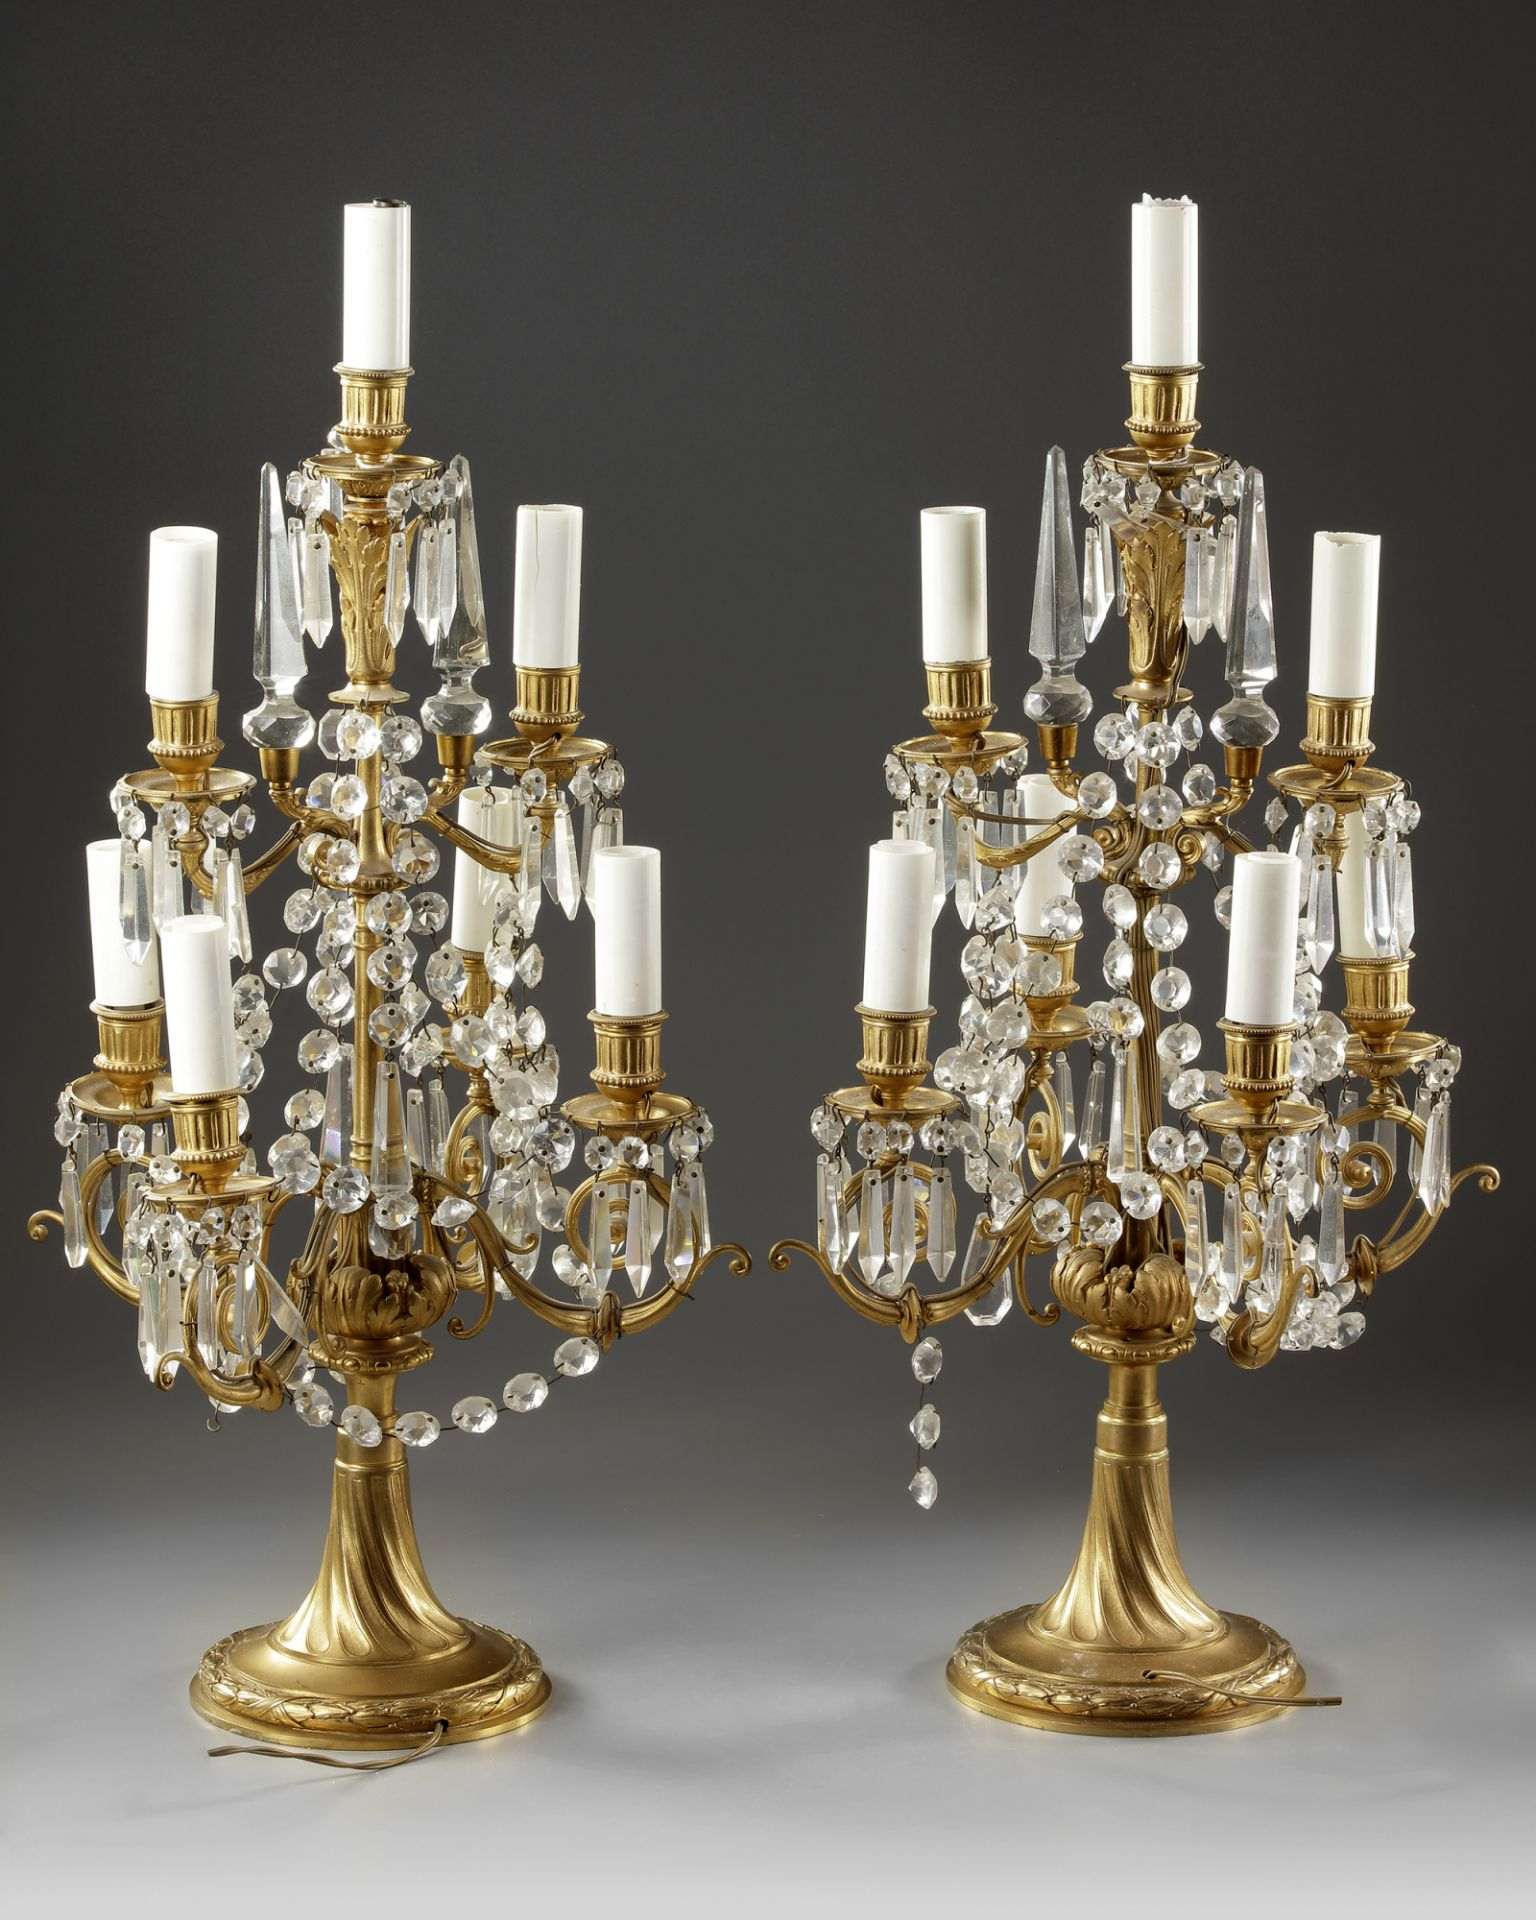 A PAIR OF FRENCH GIRANDOLES, LATE 19TH CENTURY - Image 2 of 2